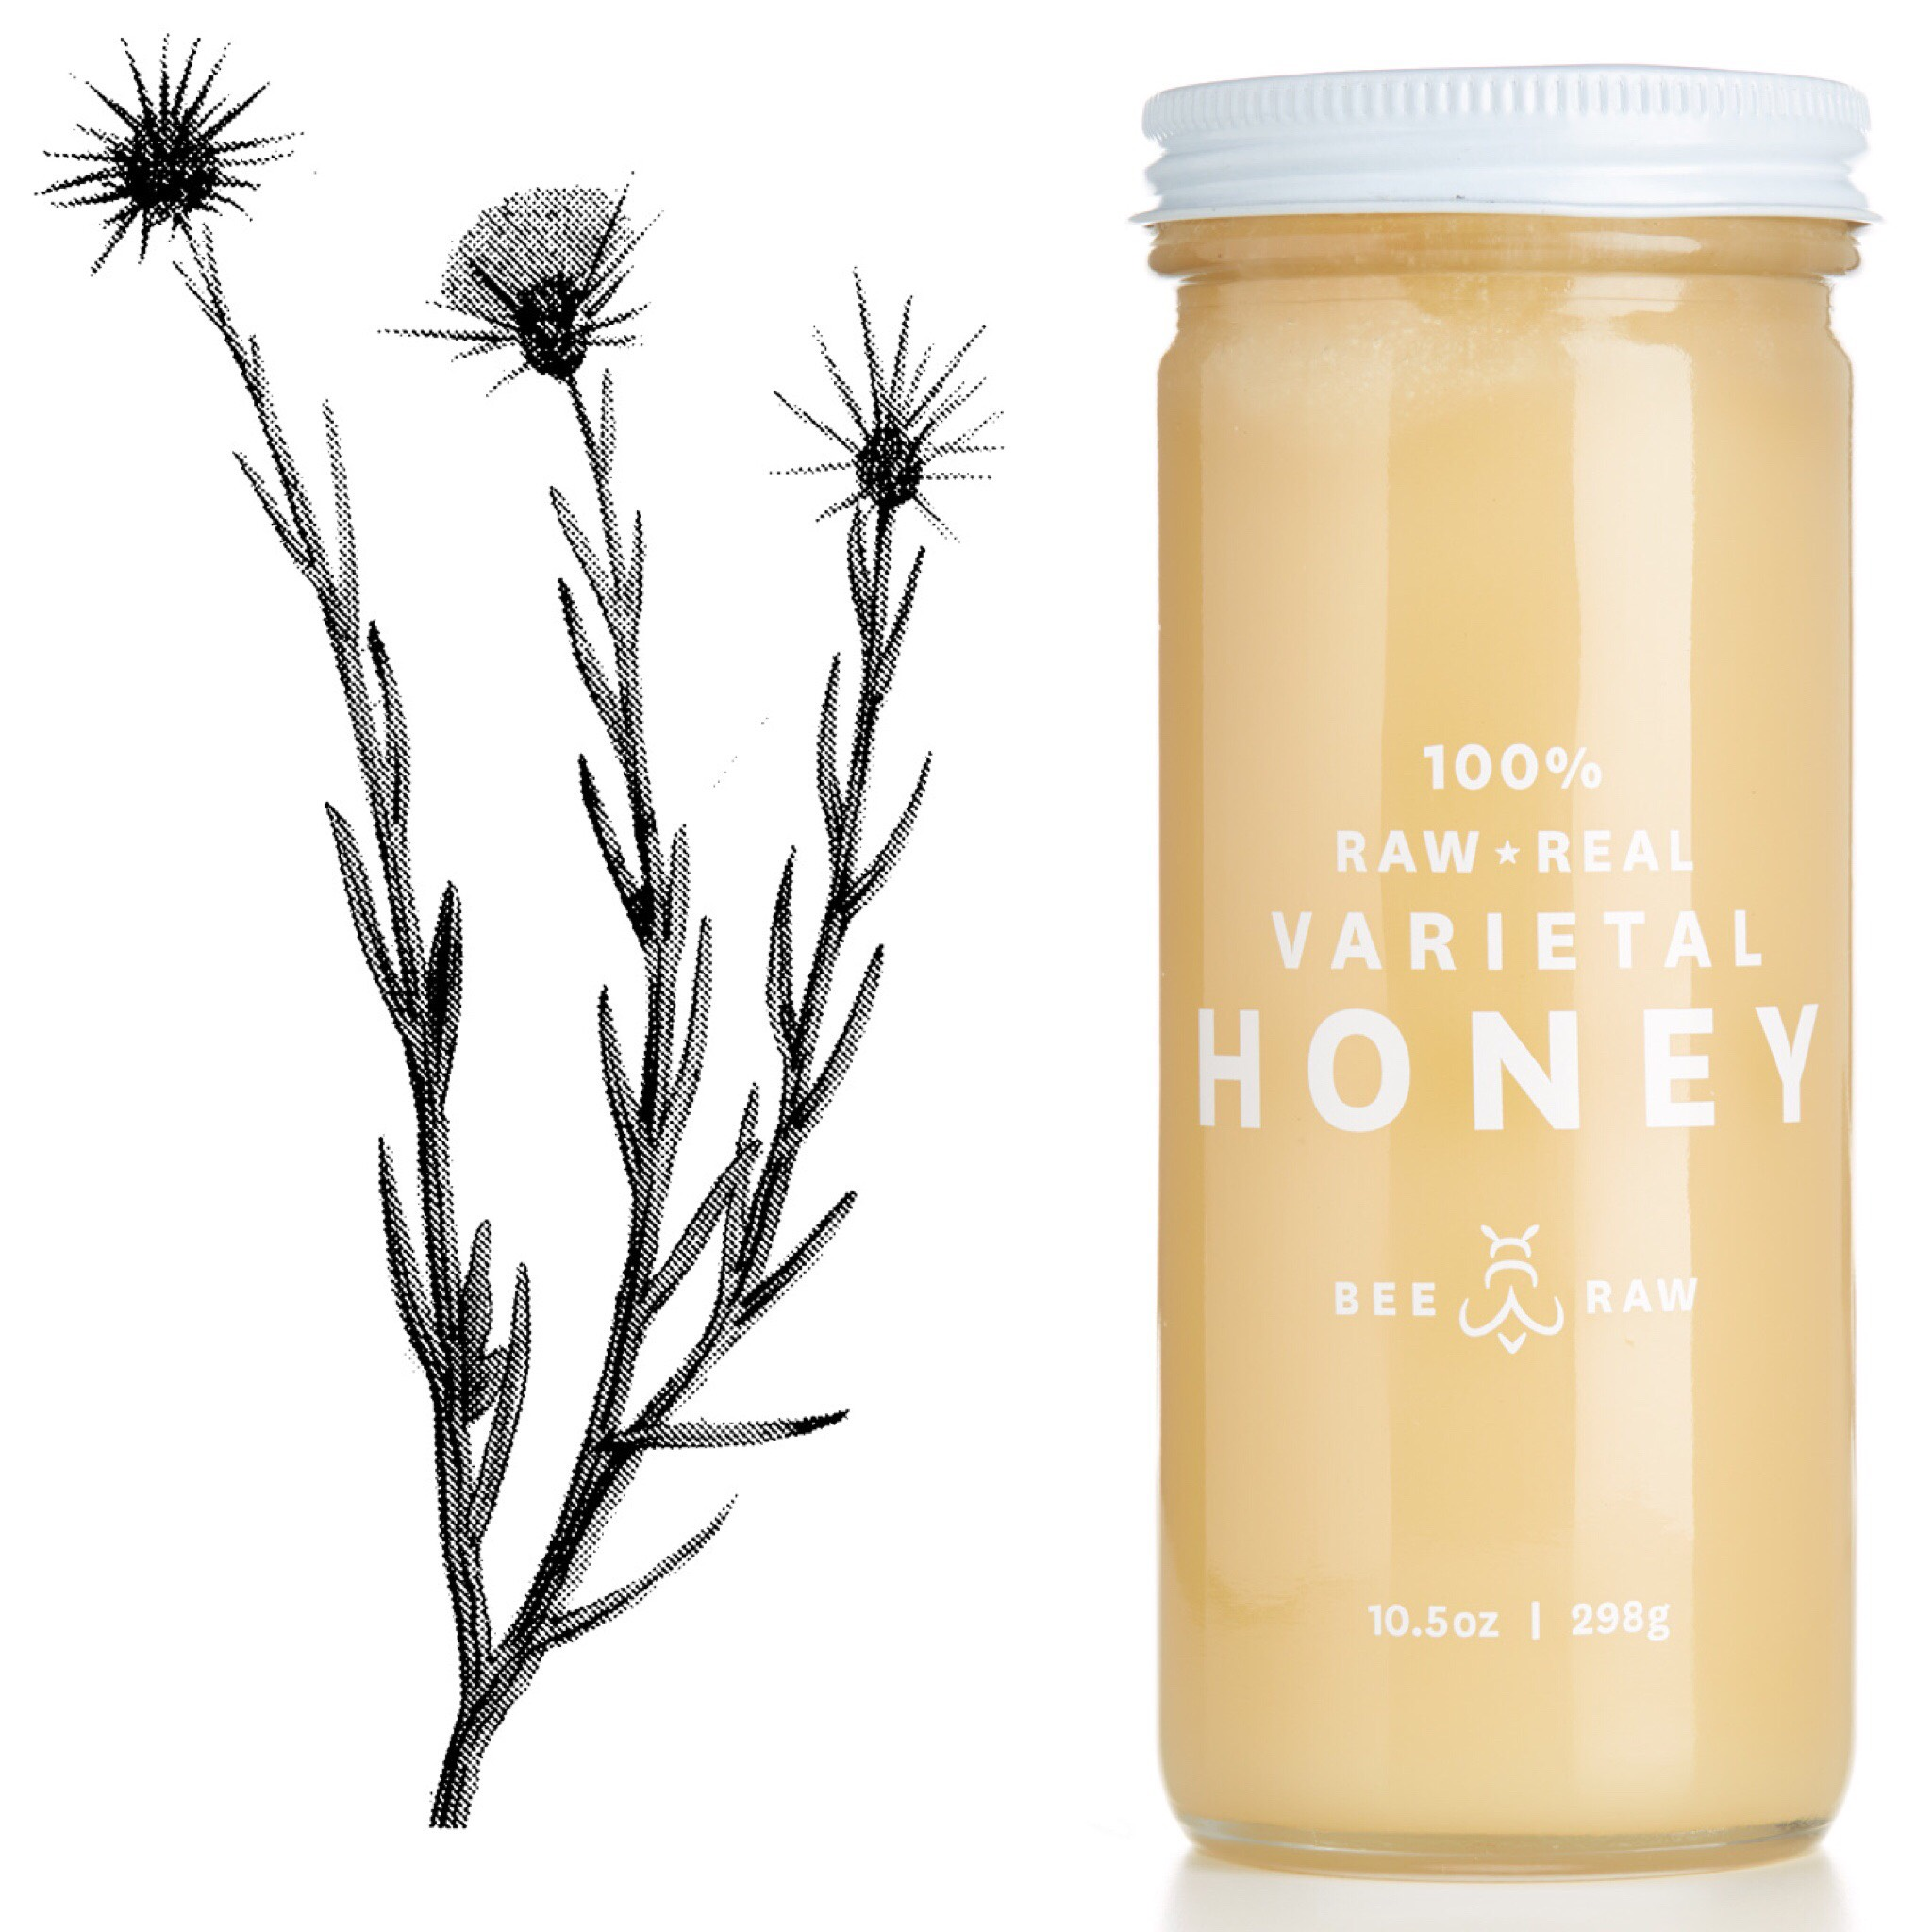 Star-Thistle-drawing-with-jar.jpg